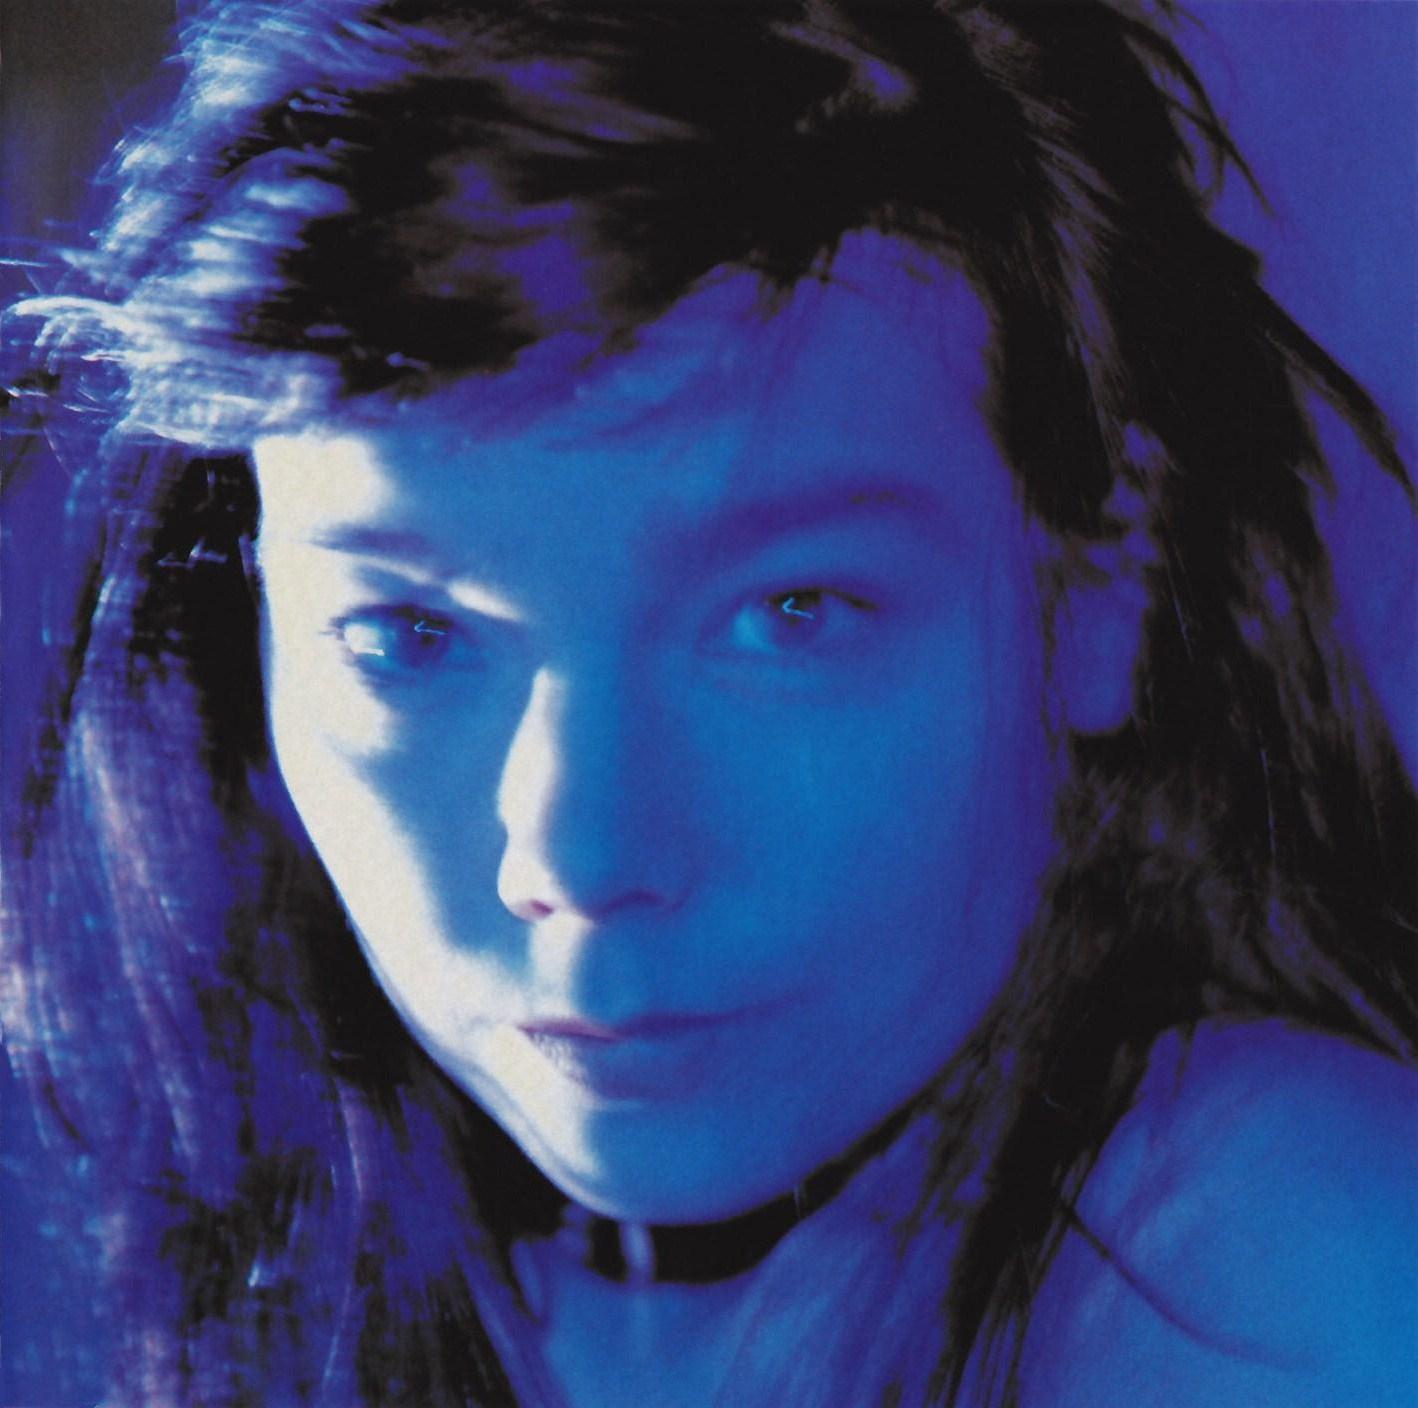 Copertina cd Bjork - Telegram - Front (2-2), cover cd ...